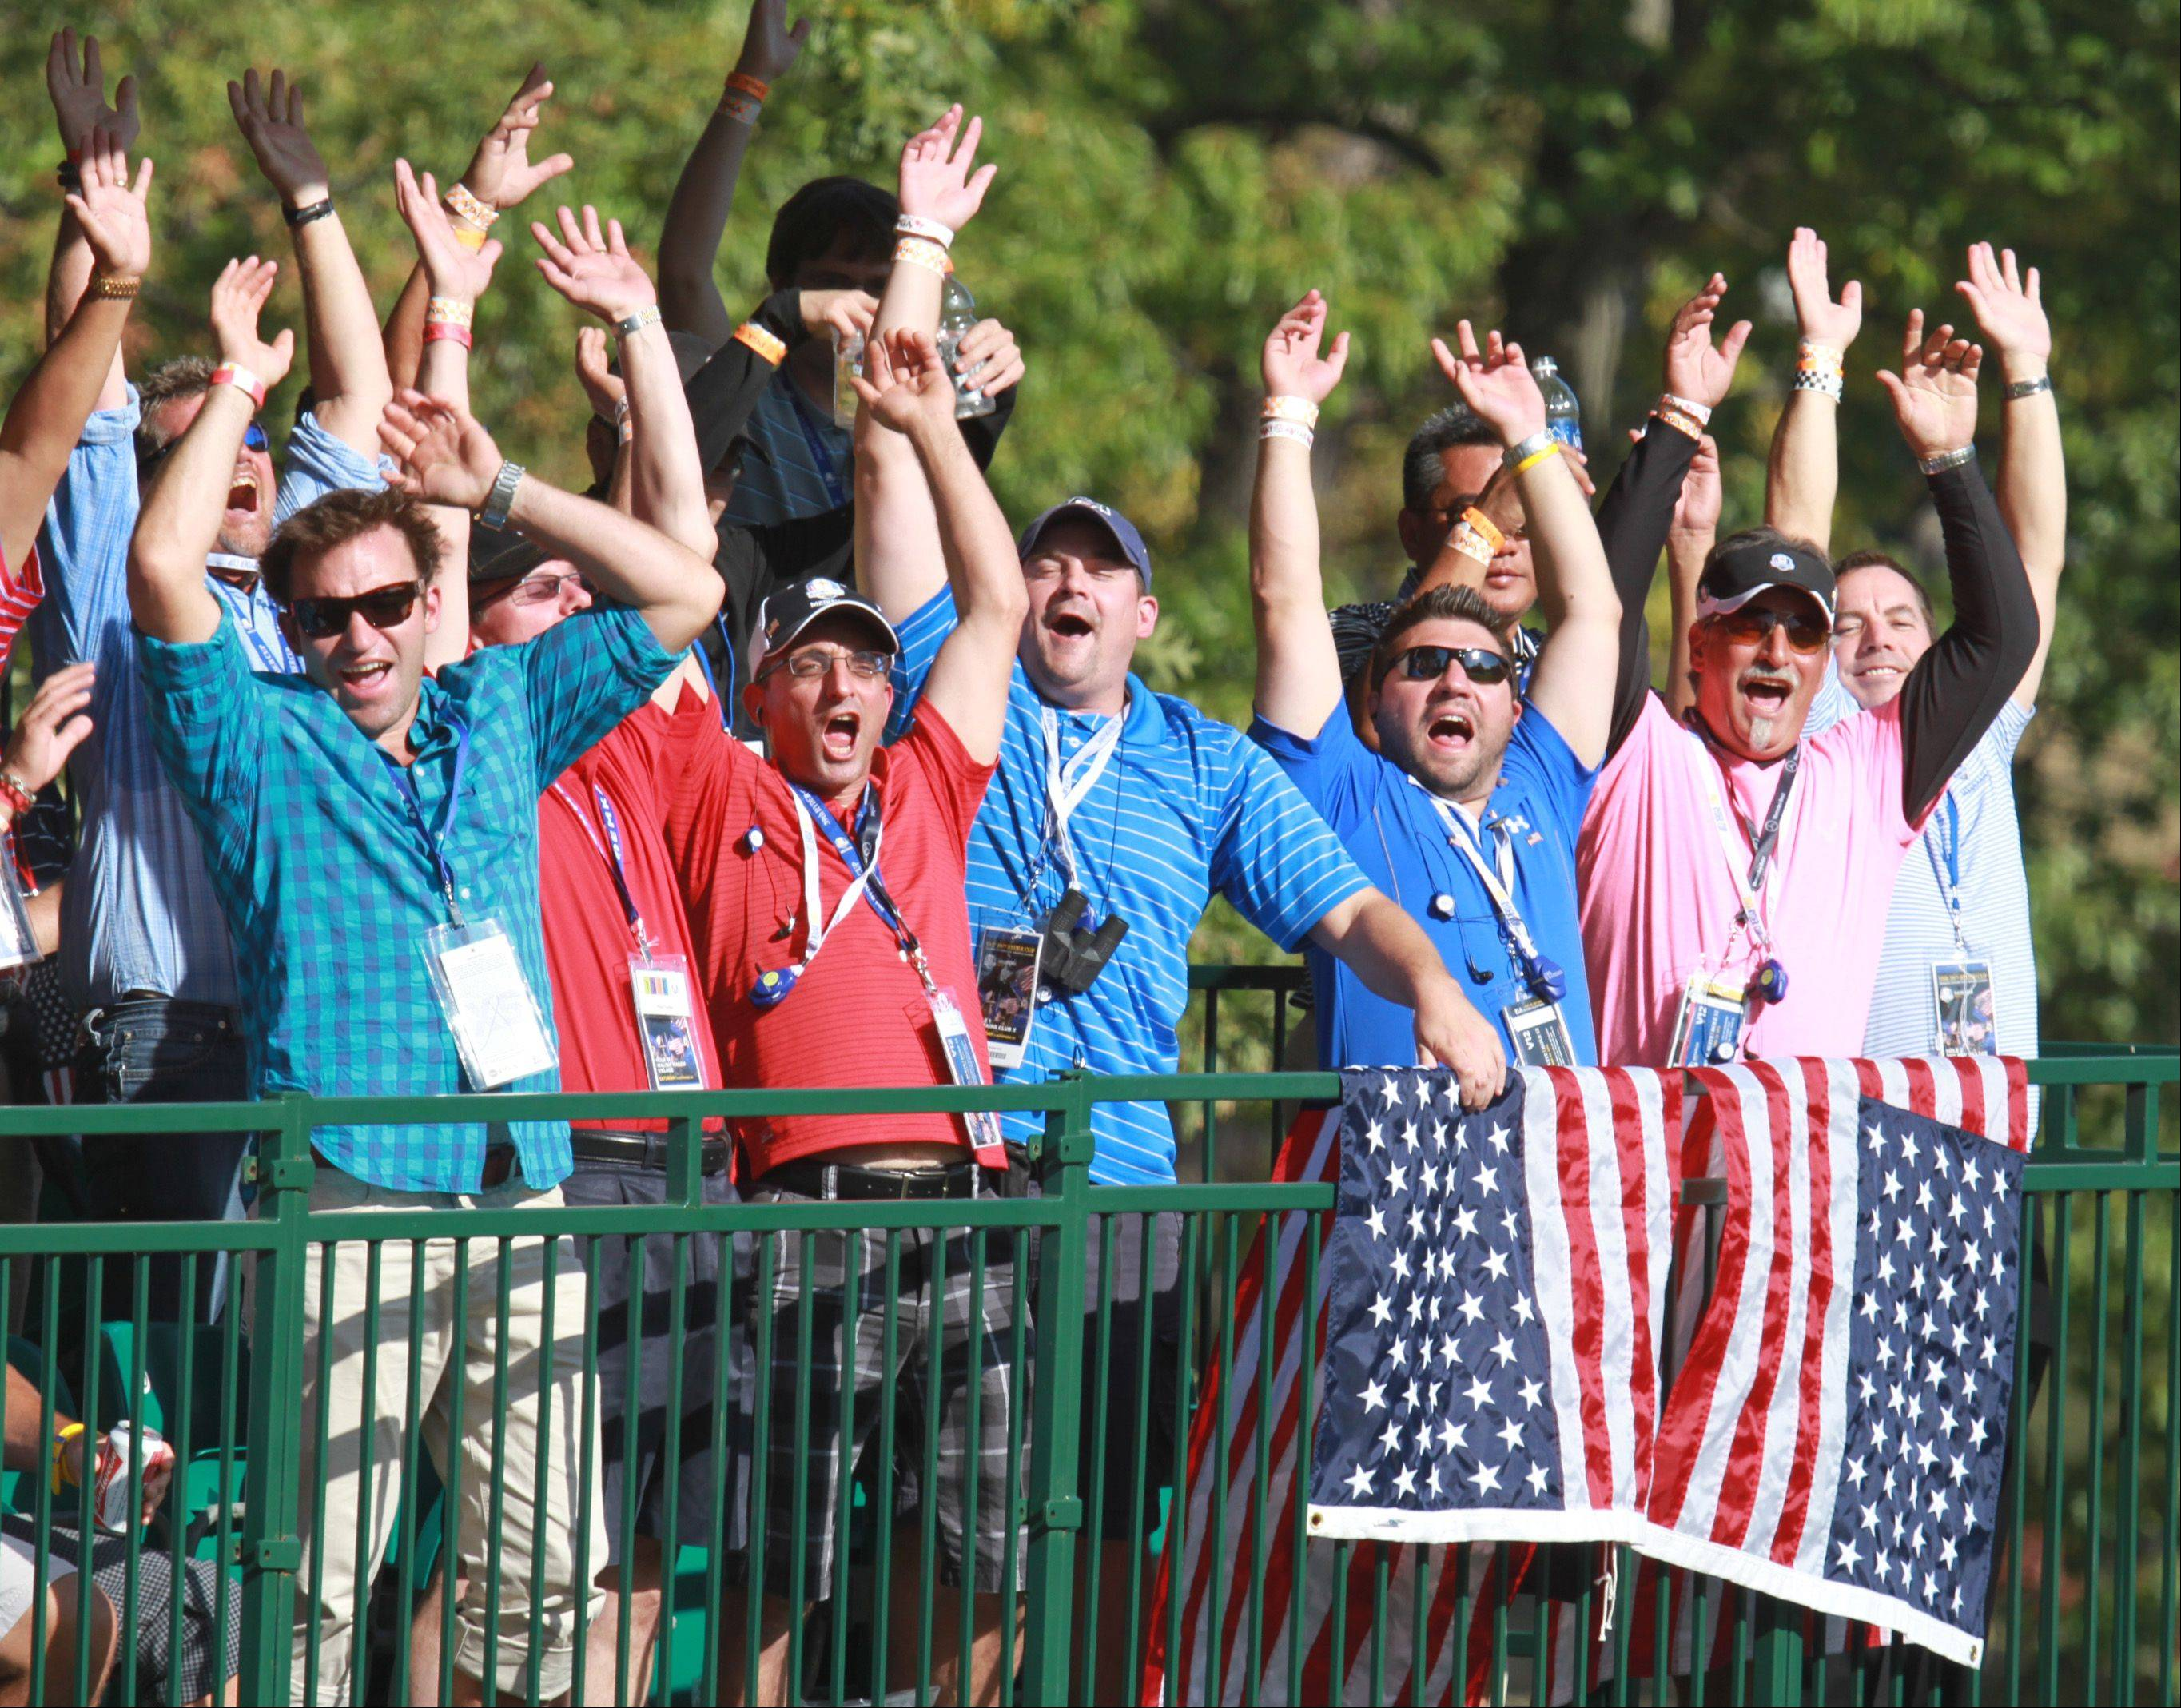 Ryder Cub fans watching the action on the No. 12 green at Medinah Country Club go crazy for Team USA Saturday afternoon.